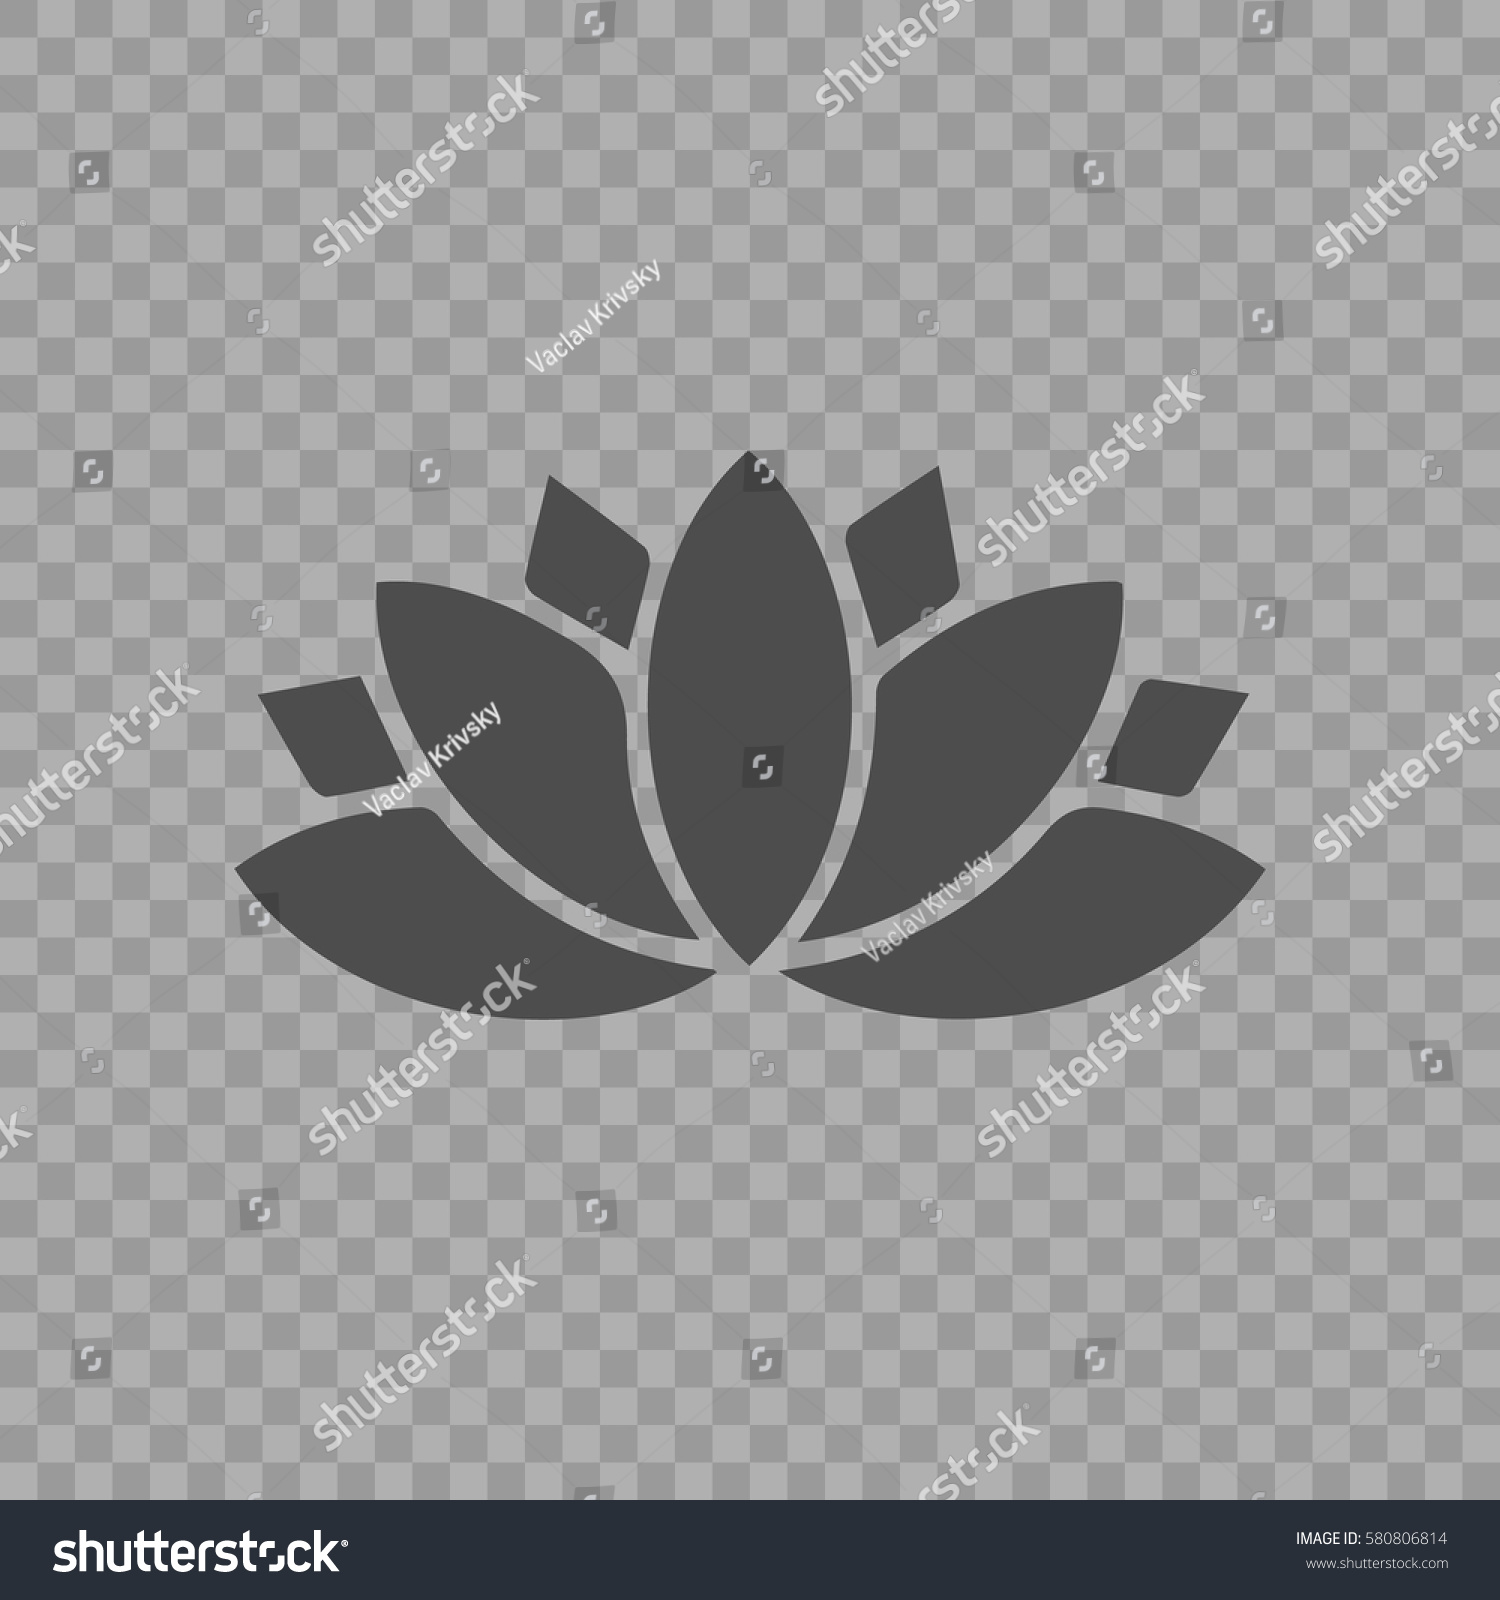 Lotus flower vector icon eps 10 stock vector royalty free lotus flower vector icon eps 10 spiritual simple silhouette symbol on transparent background izmirmasajfo